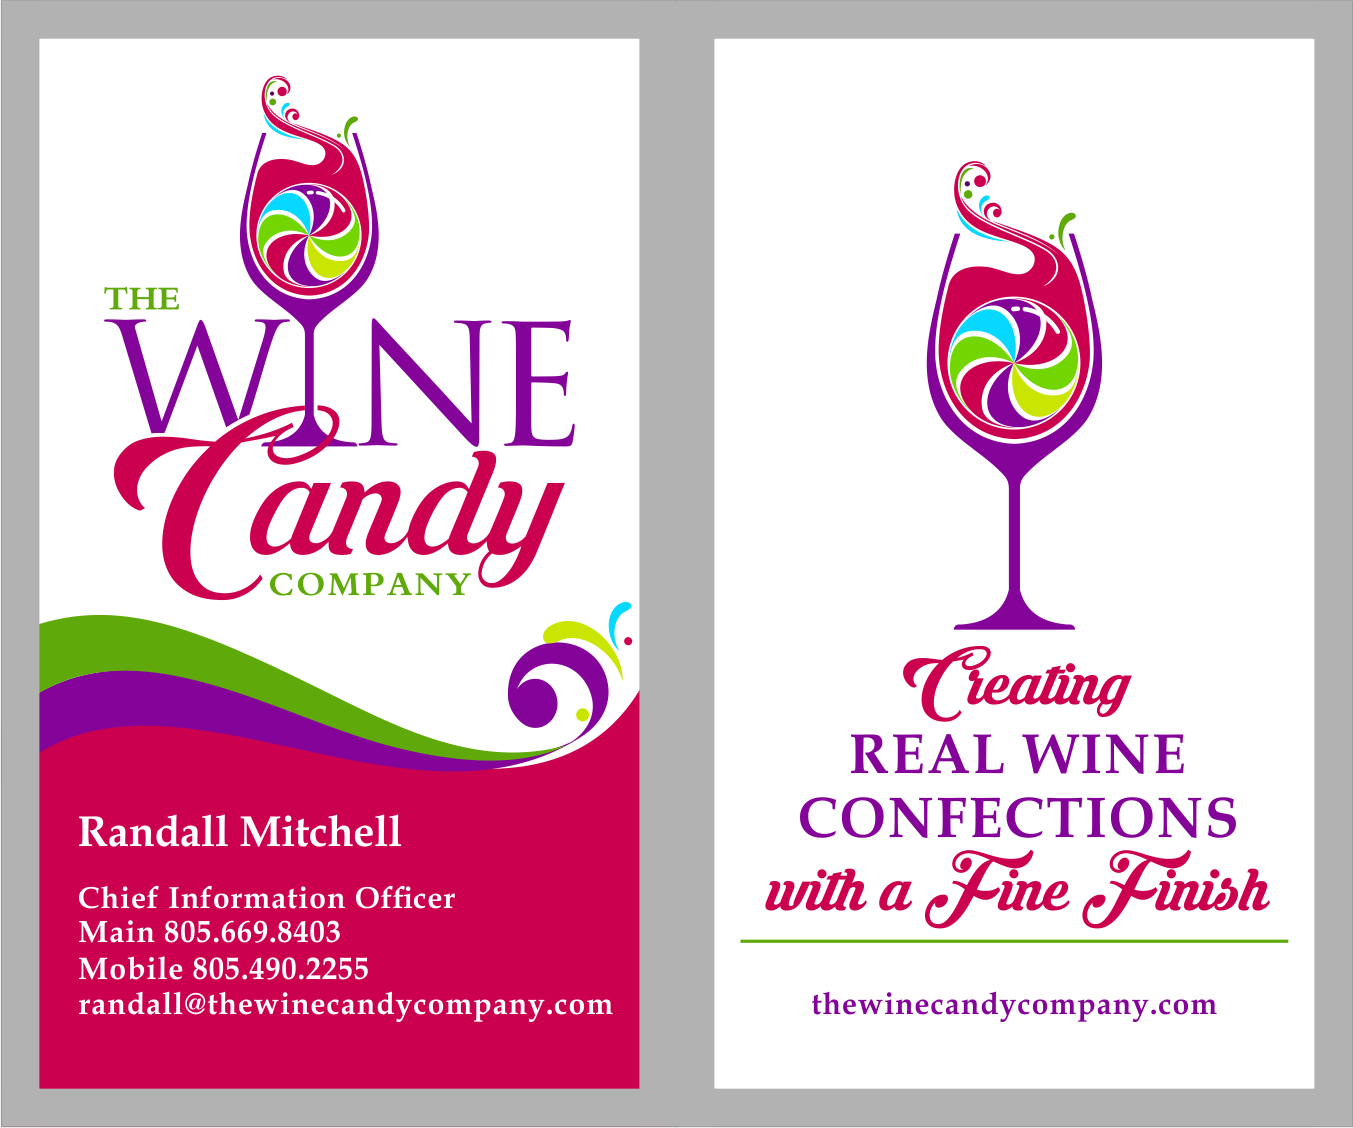 The Wine Candy Company business card